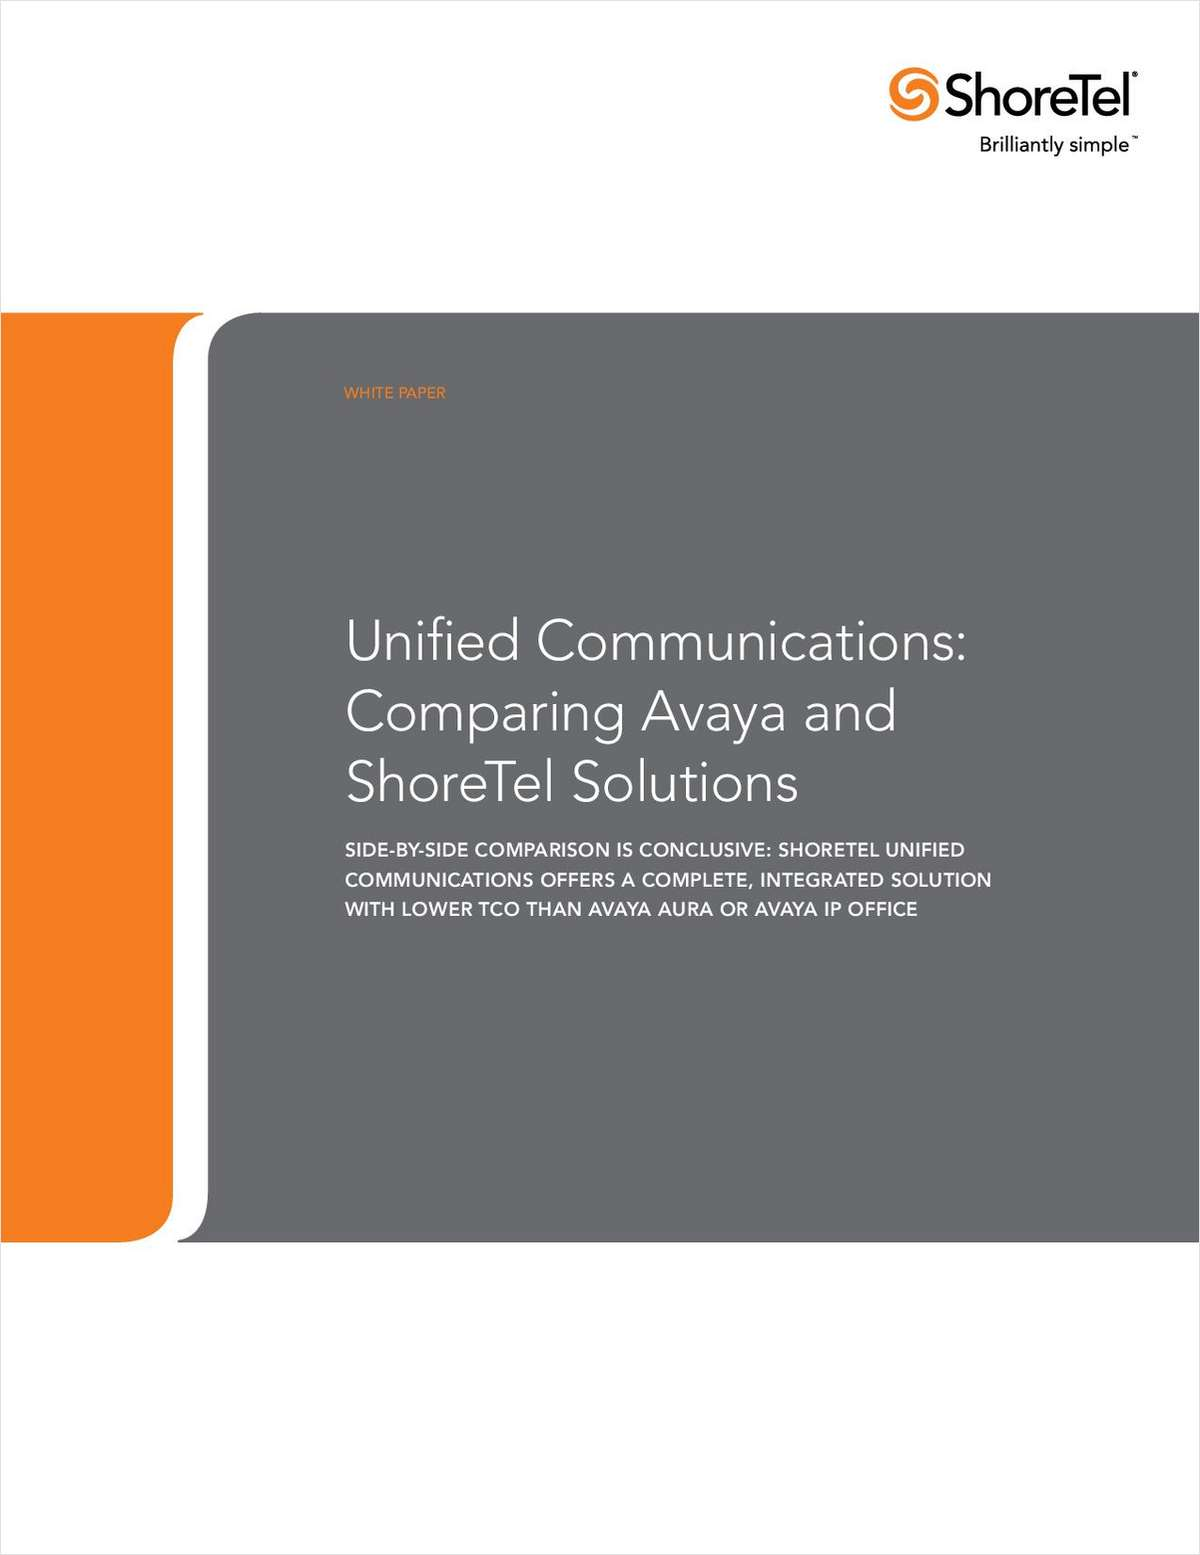 Comparison of Avaya and ShoreTel Unified Communication Solutions